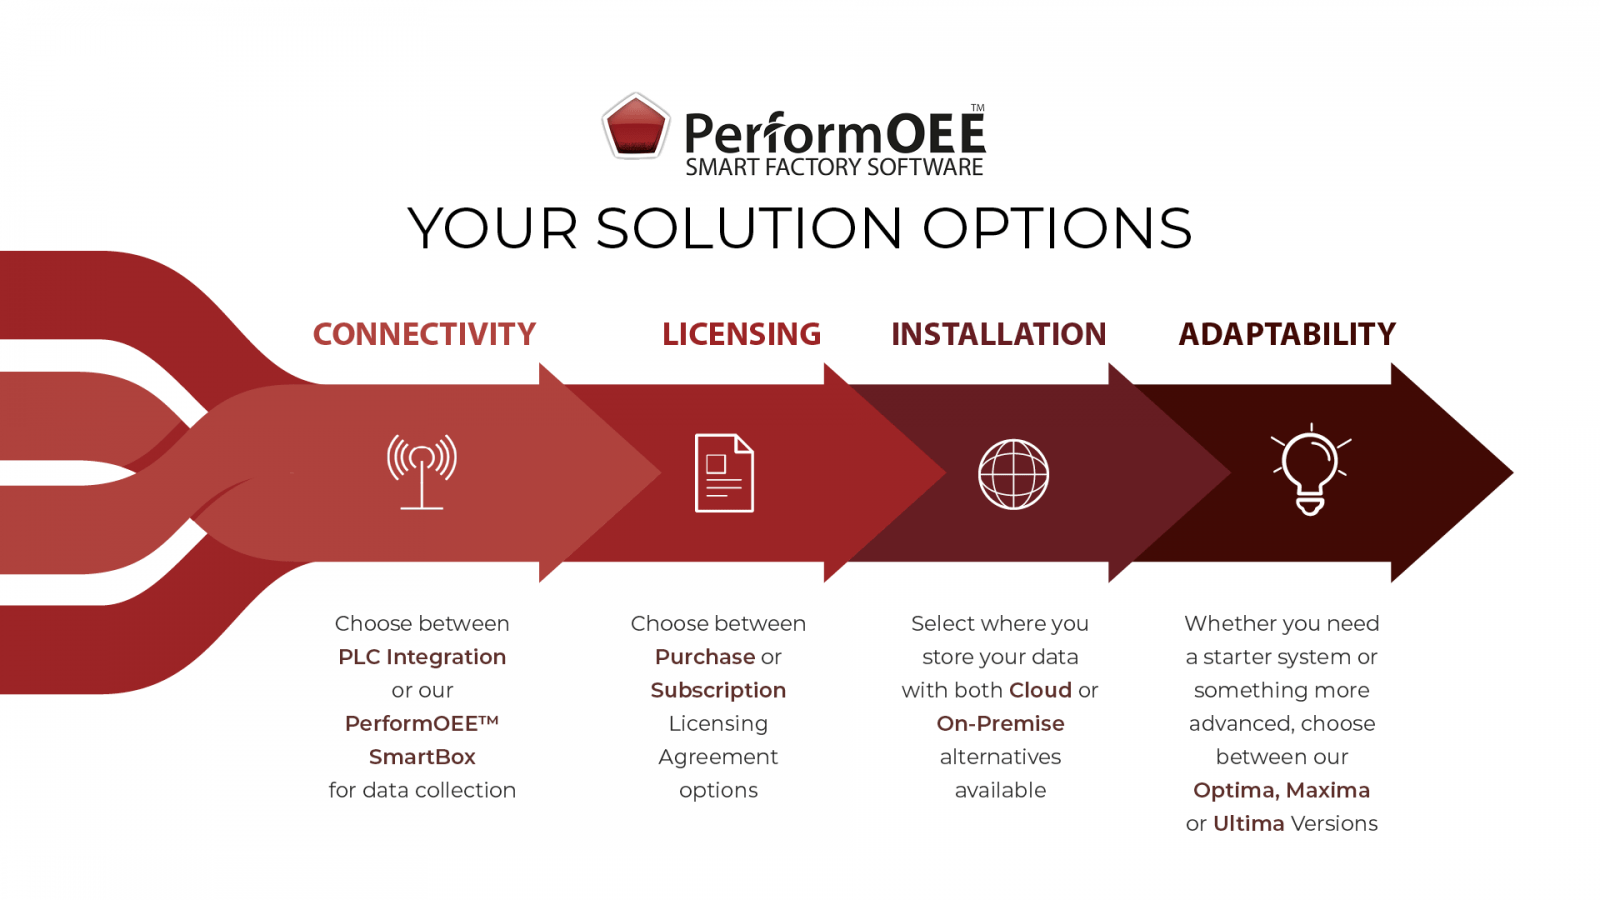 PerformOEE - Smart Factory OEE Software Solution Options